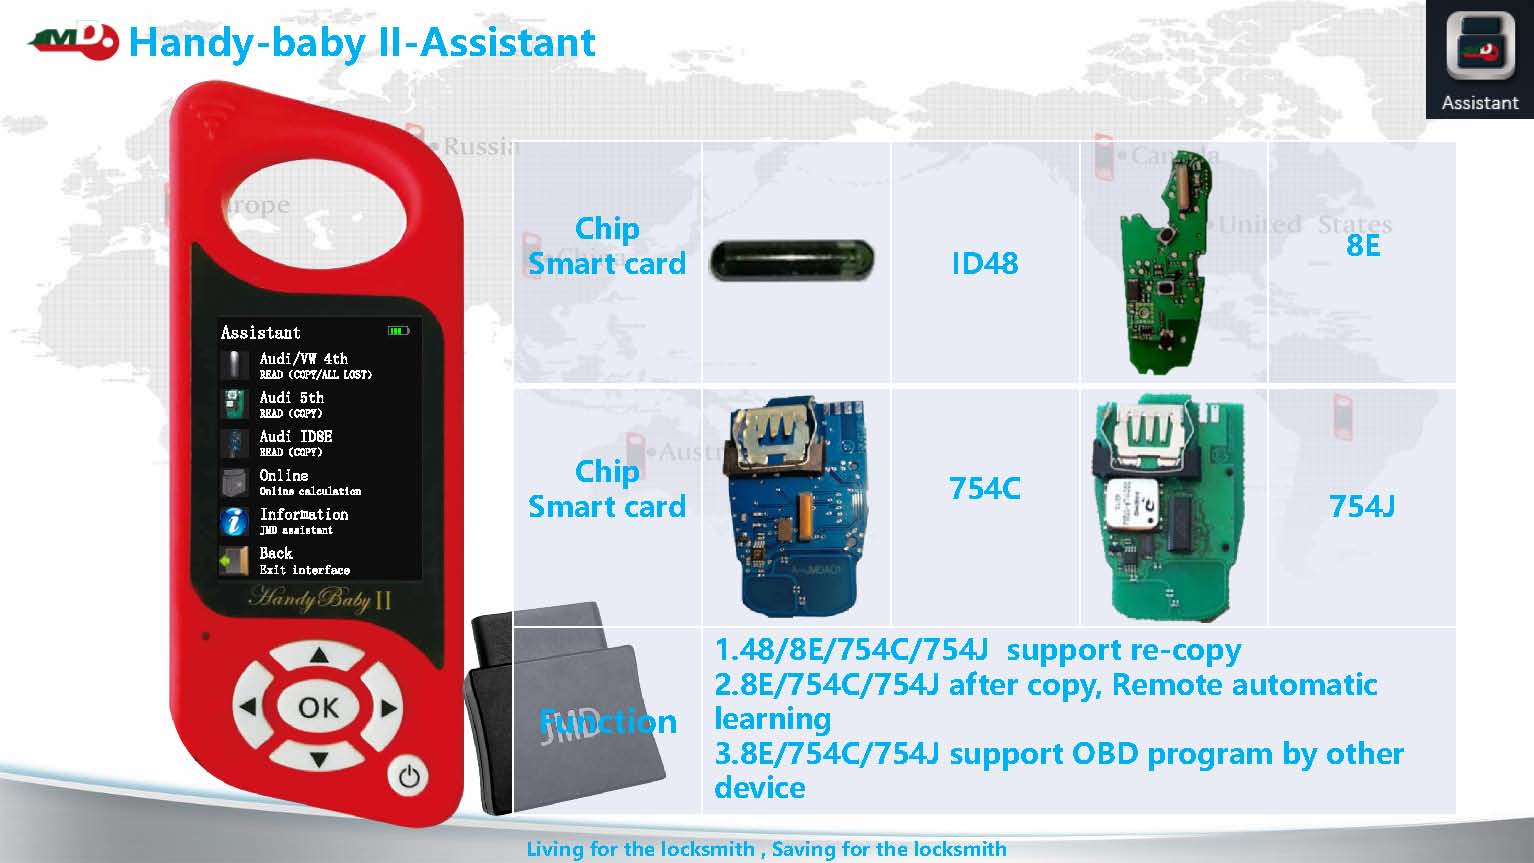 jmd-handy-baby-2-and -jmd-assistant-guide-01